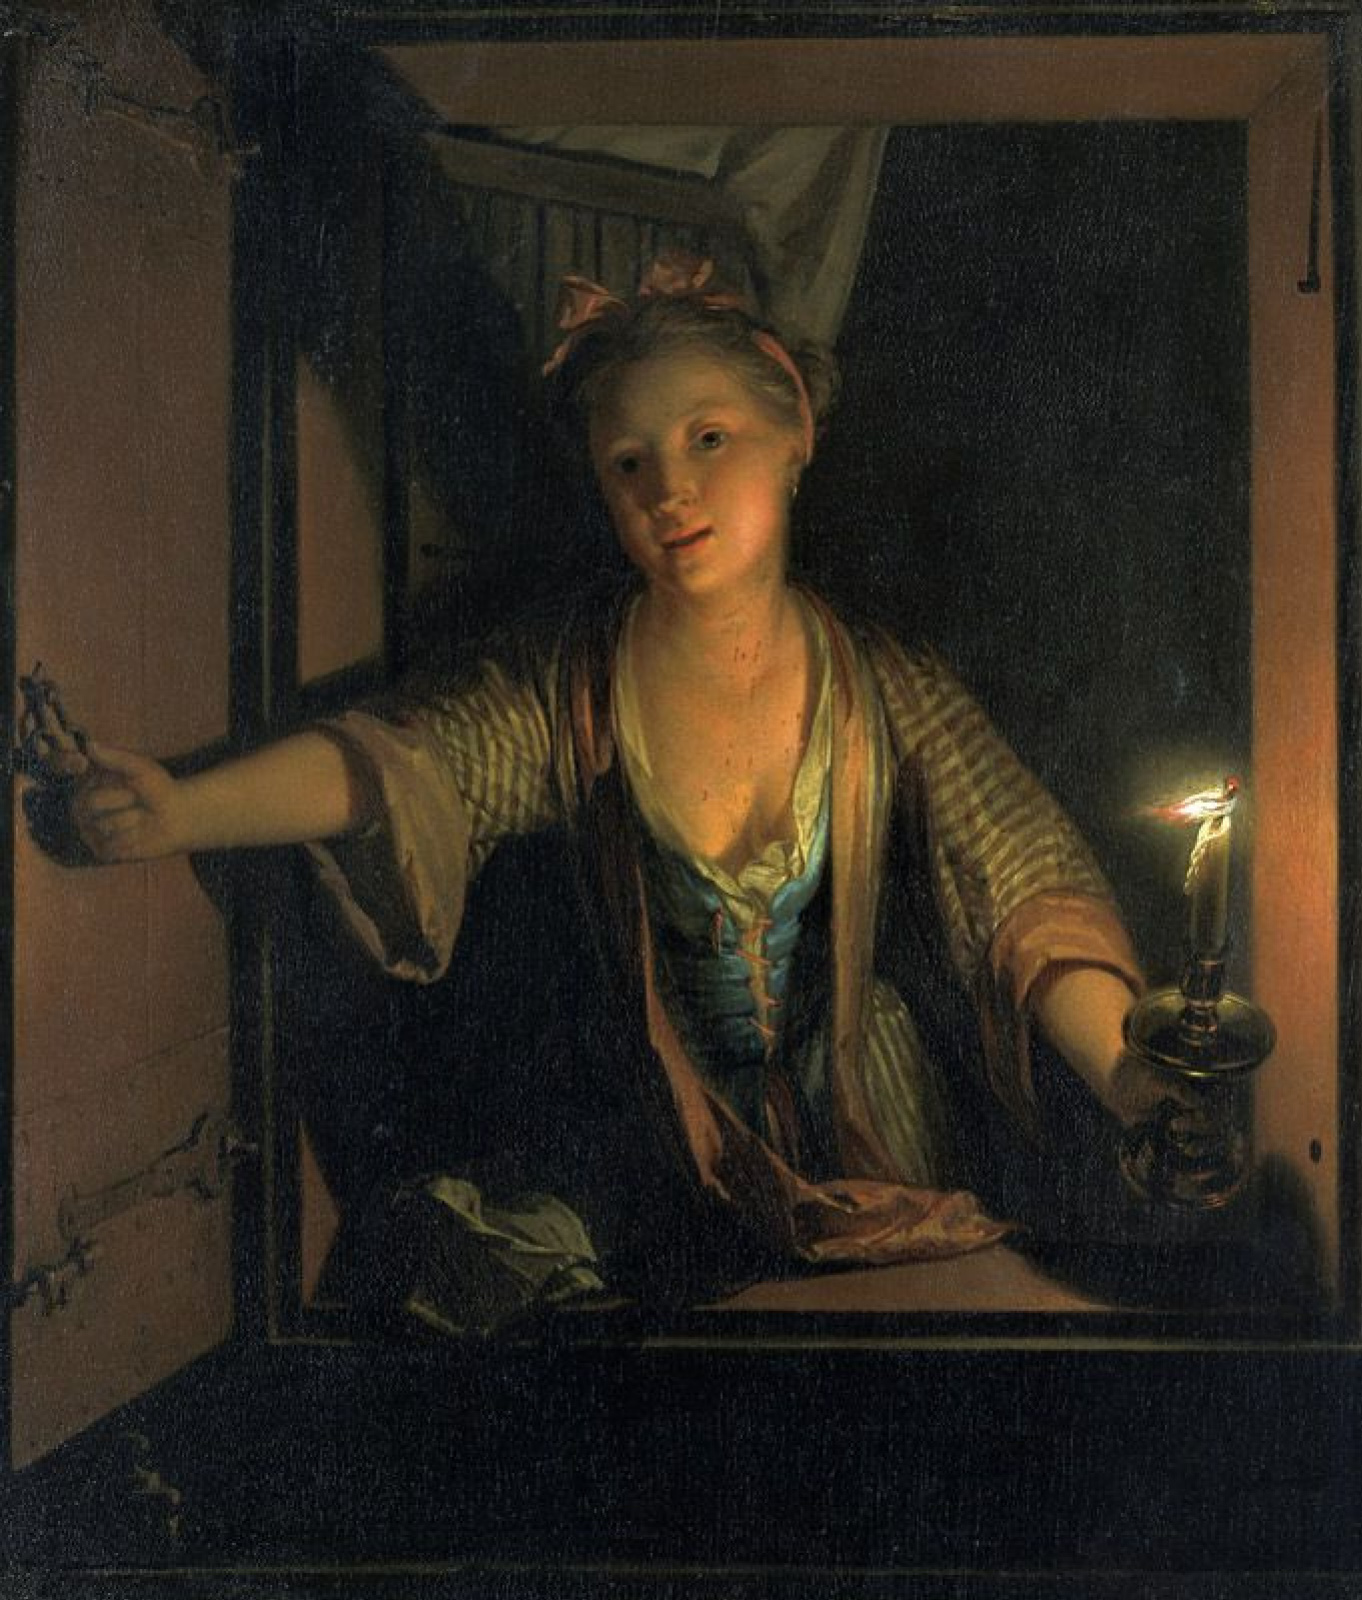 Godfree Schalken. The girl at the window